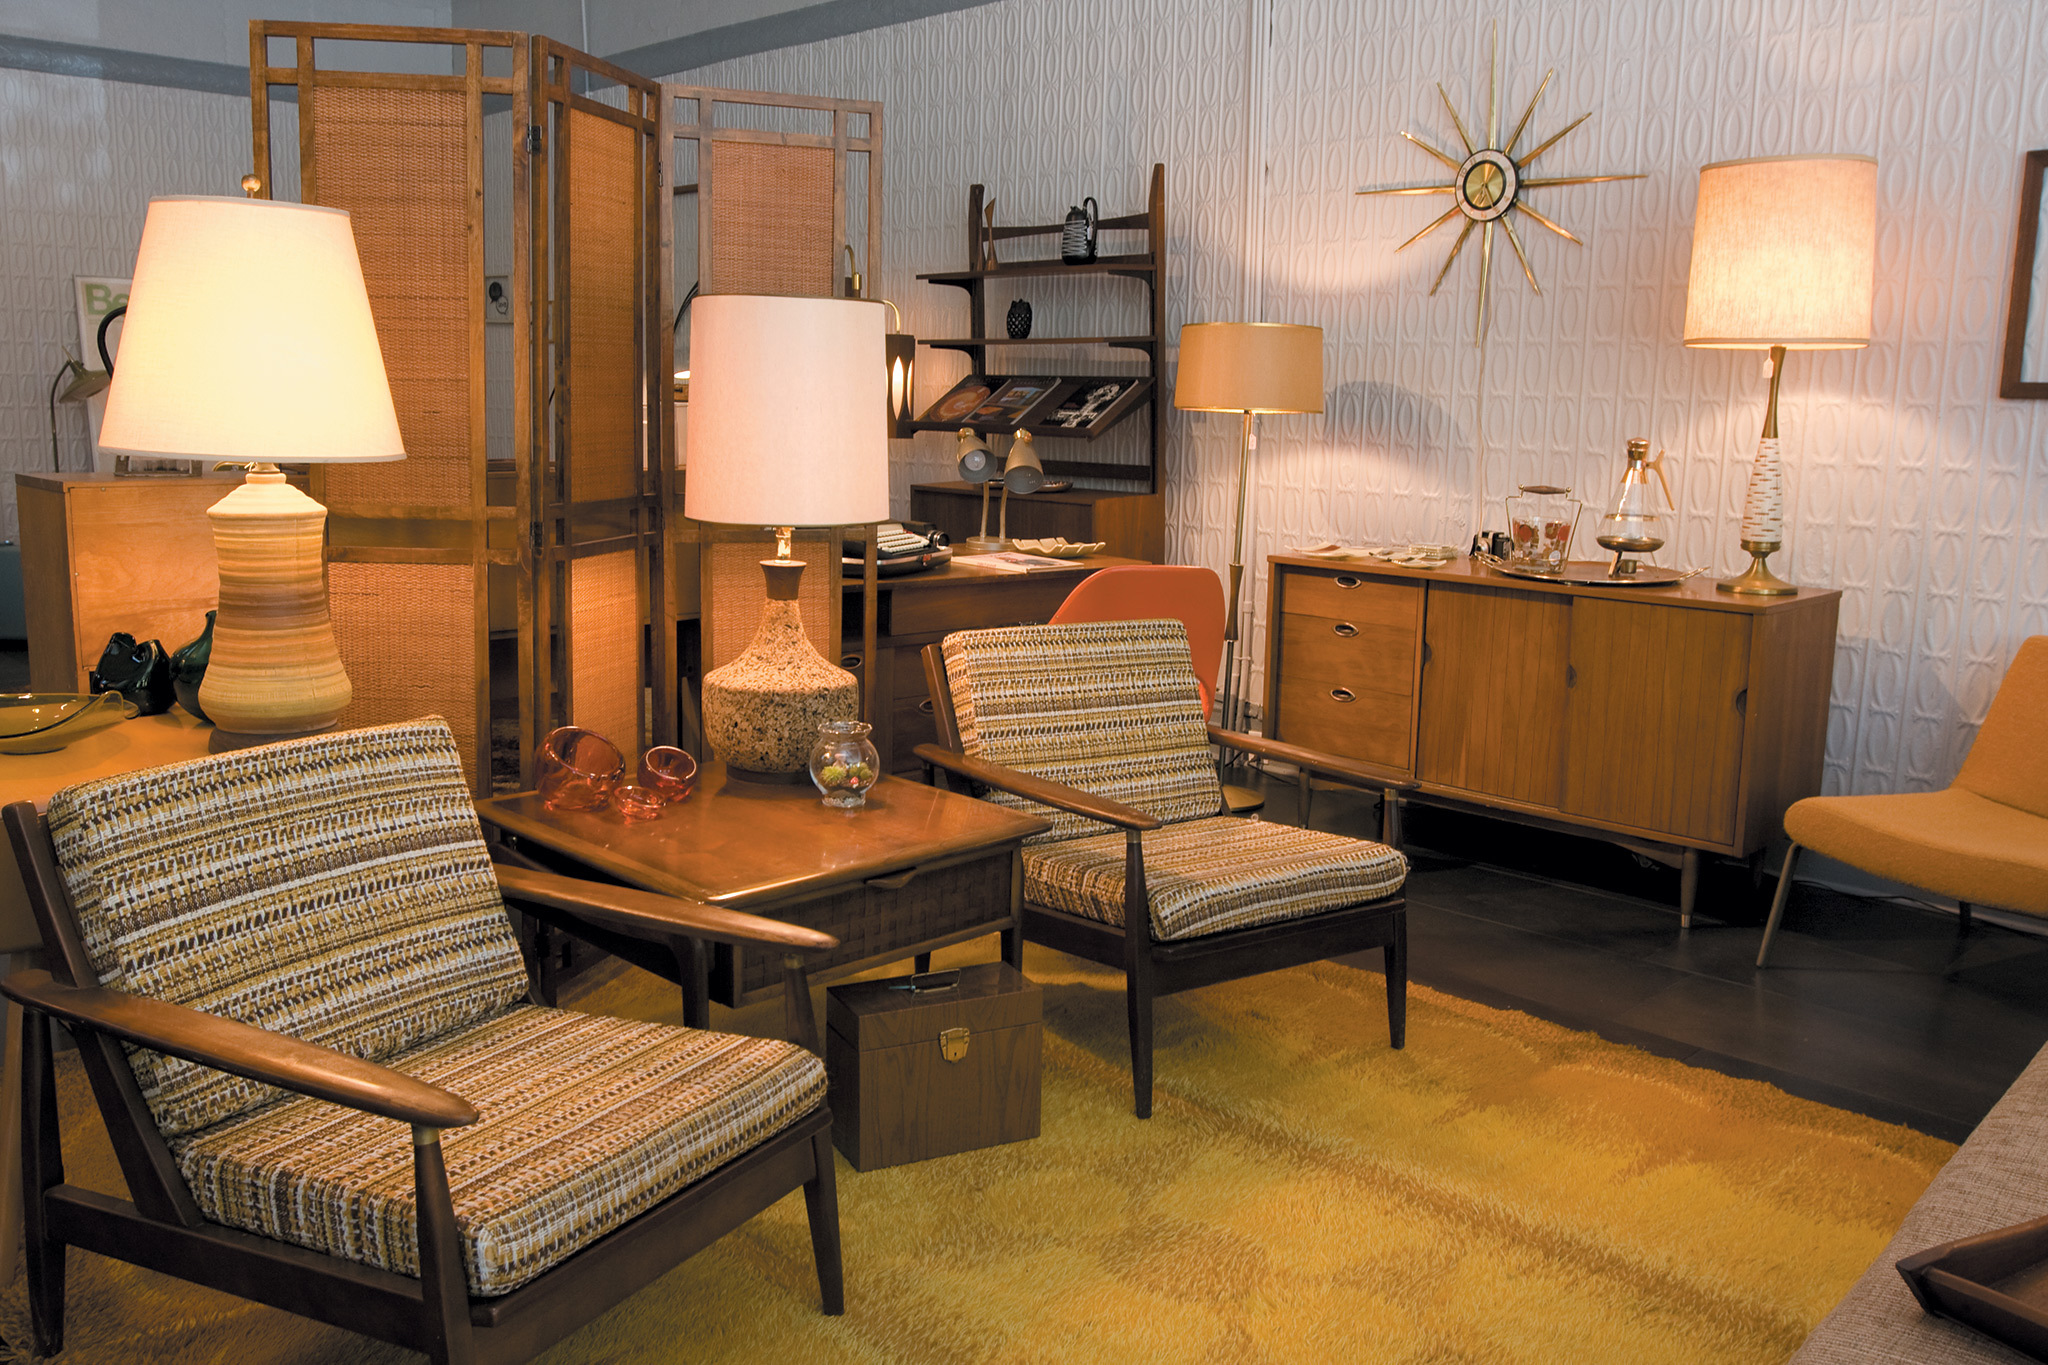 Find Me A Furniture Store Furniture Stores In Chicago For Home Goods And Home Decor